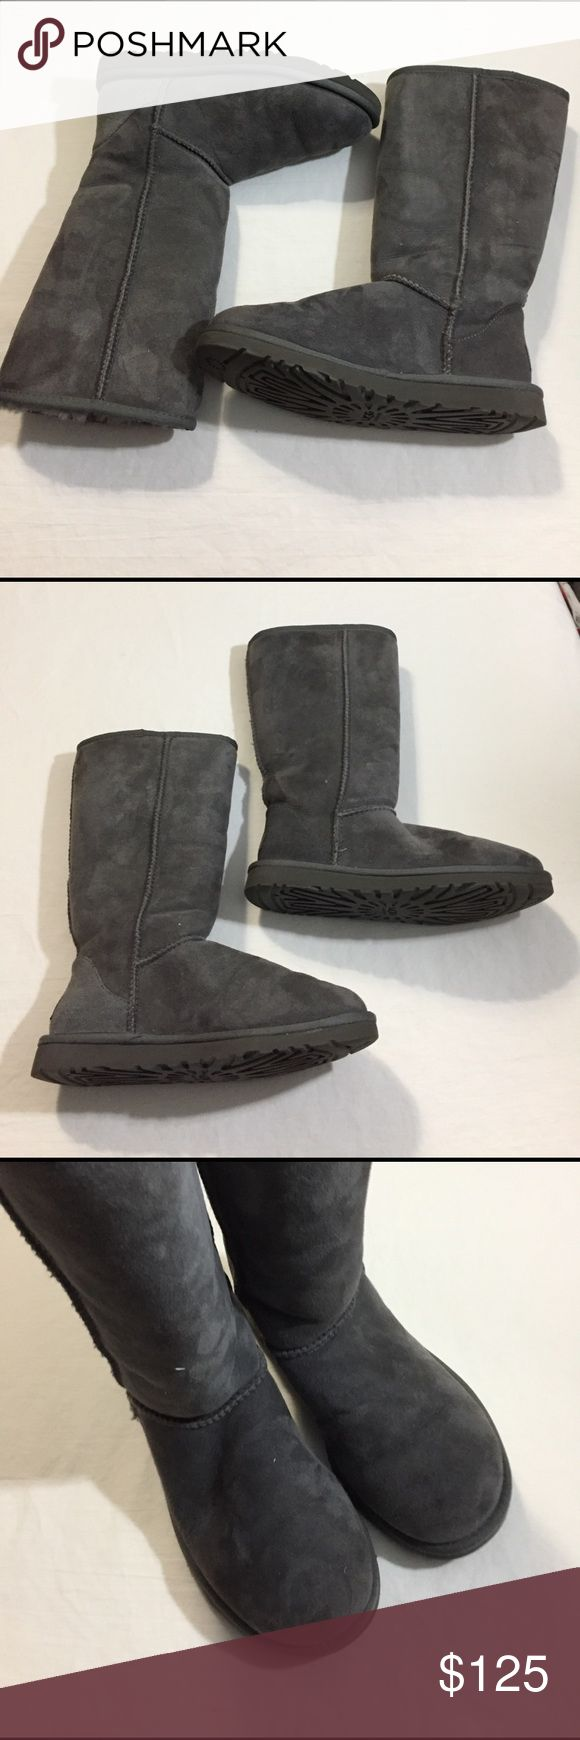 Auth. UGG classic tall boots NWOB Auth. UGG classic tall boots NWOB retail $155 UGG Shoes